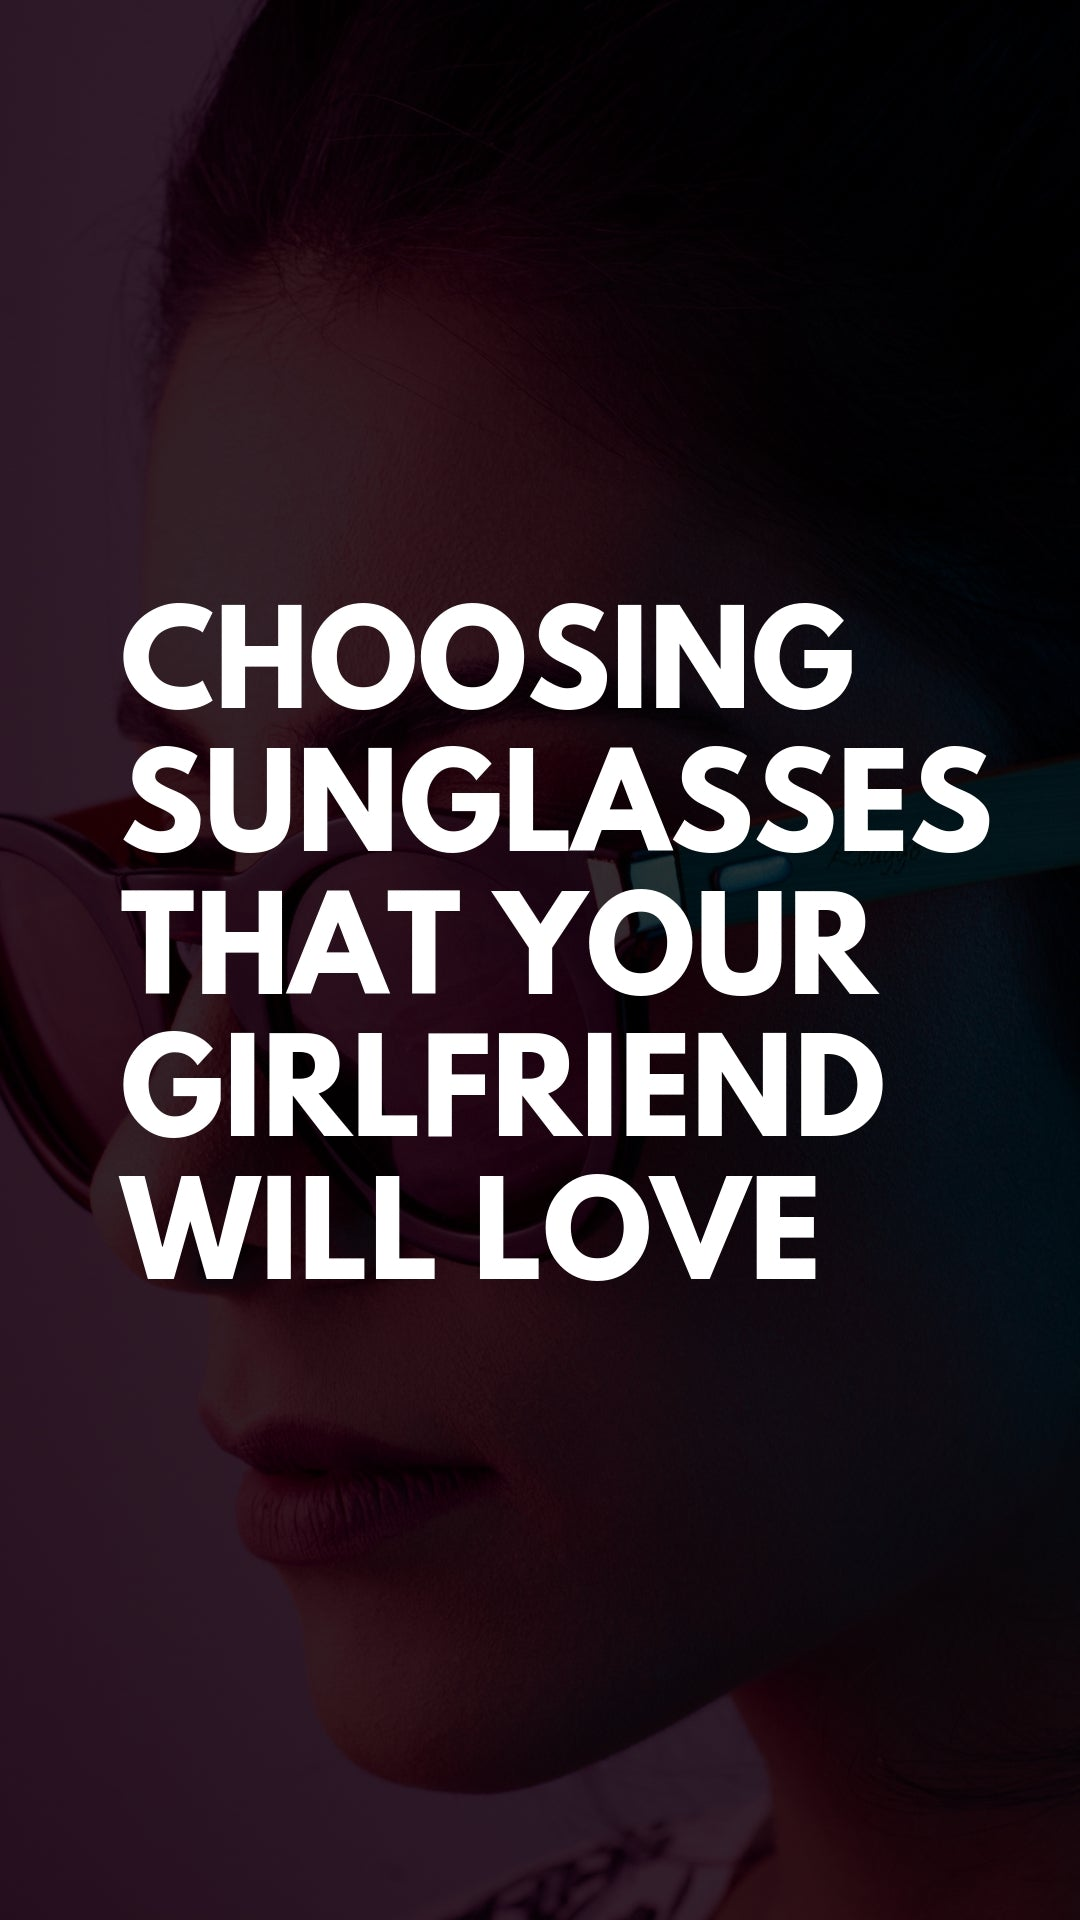 Choosing Sunglasses That Your Girlfriend Will Love